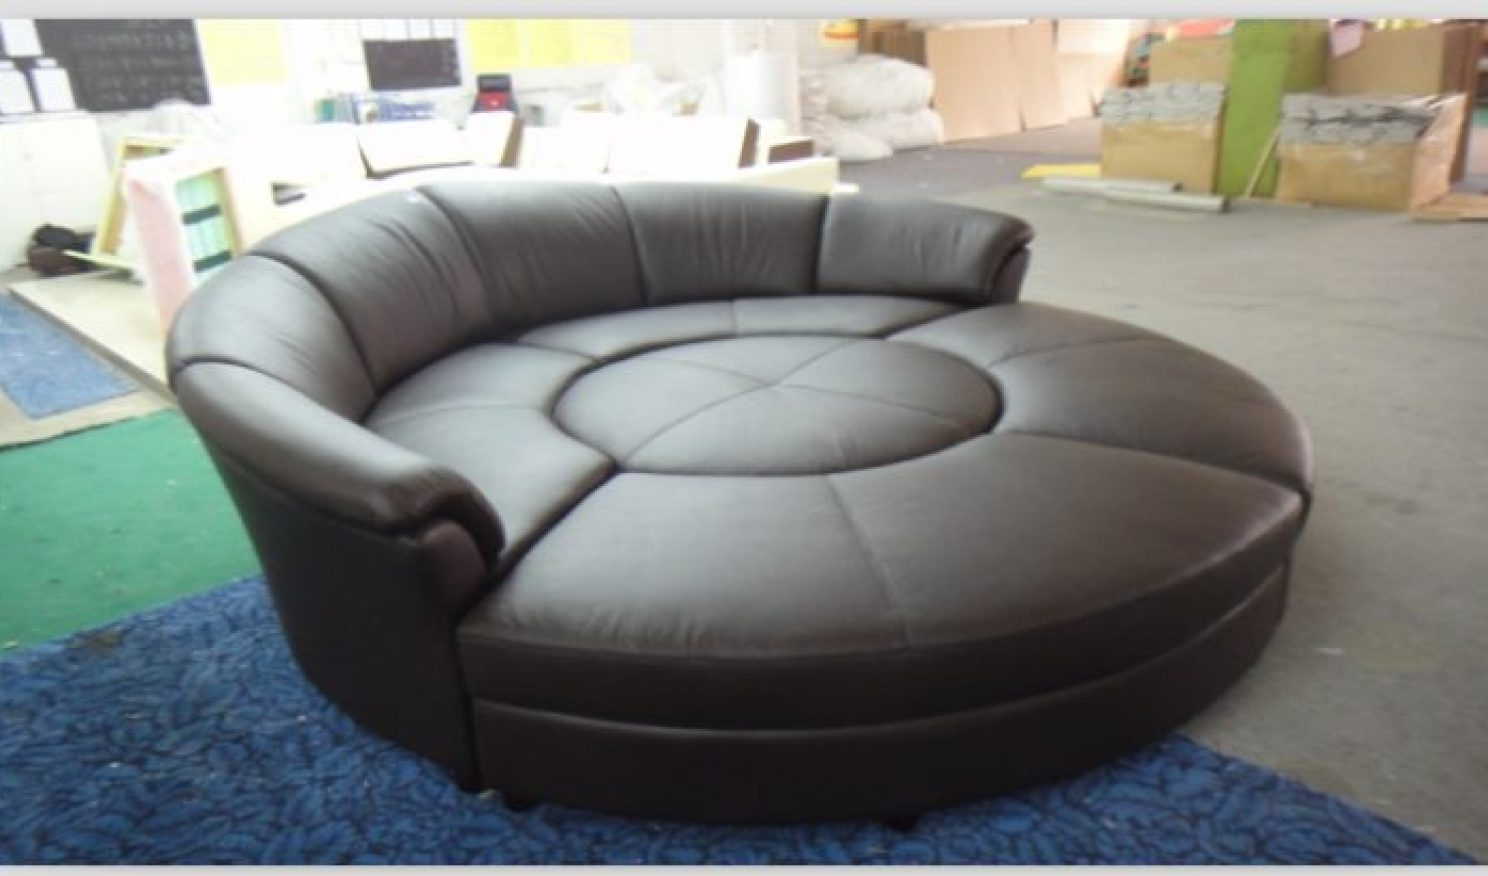 Spinning Sofa Chairs With Regard To Favorite Sofa : Round Spinning Sofa Chair Round Sofa Chair Dfs Giant Round (View 13 of 15)